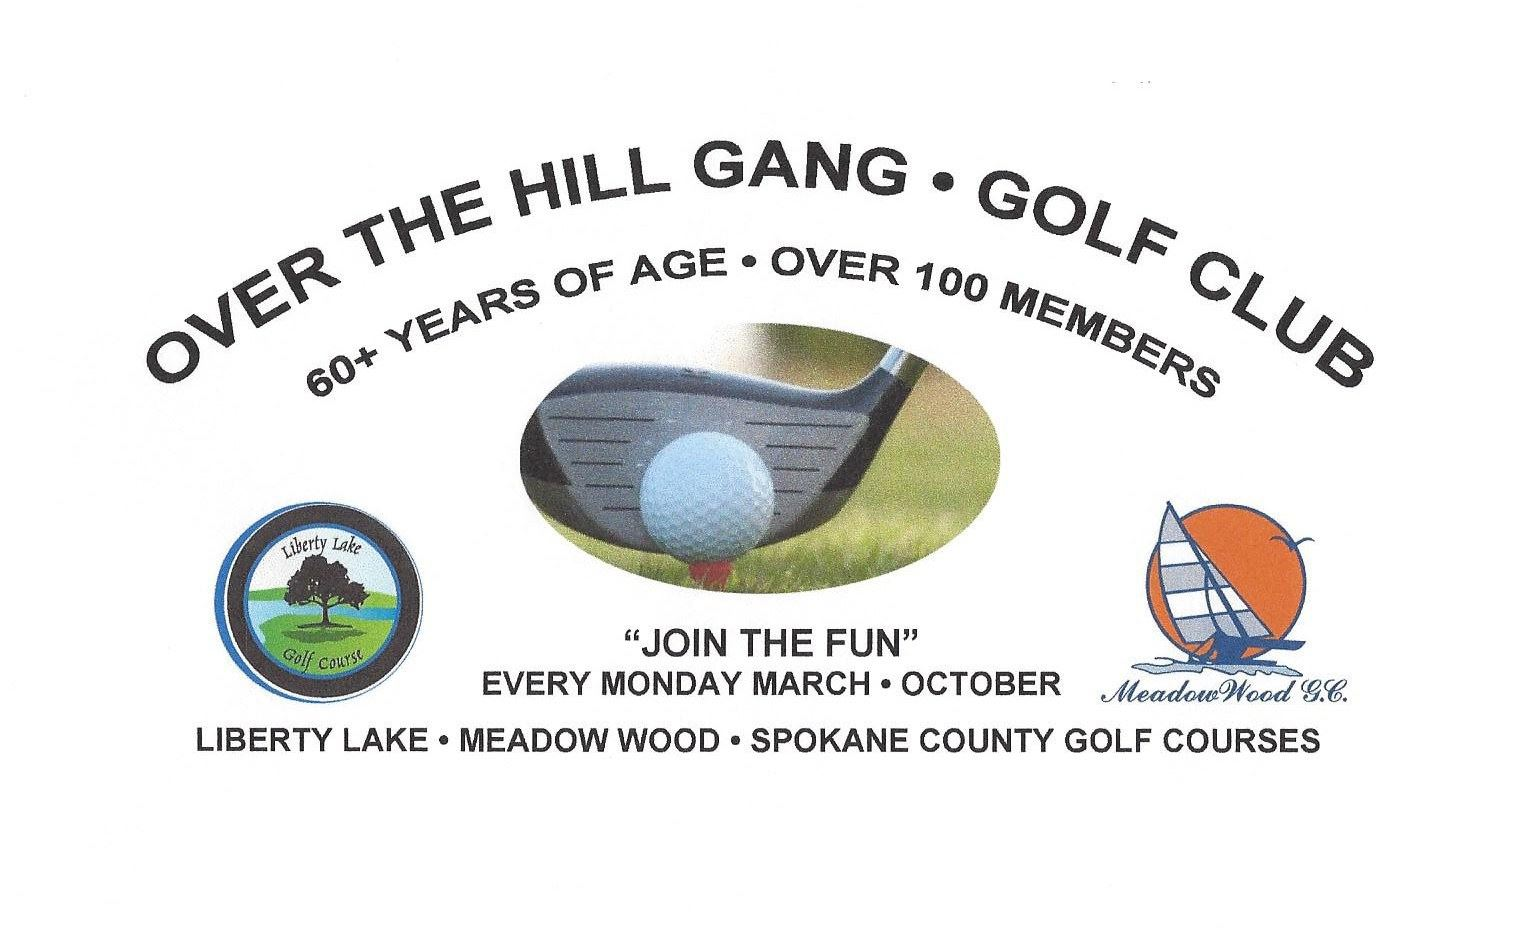 Over the Hill Gang Golf Club